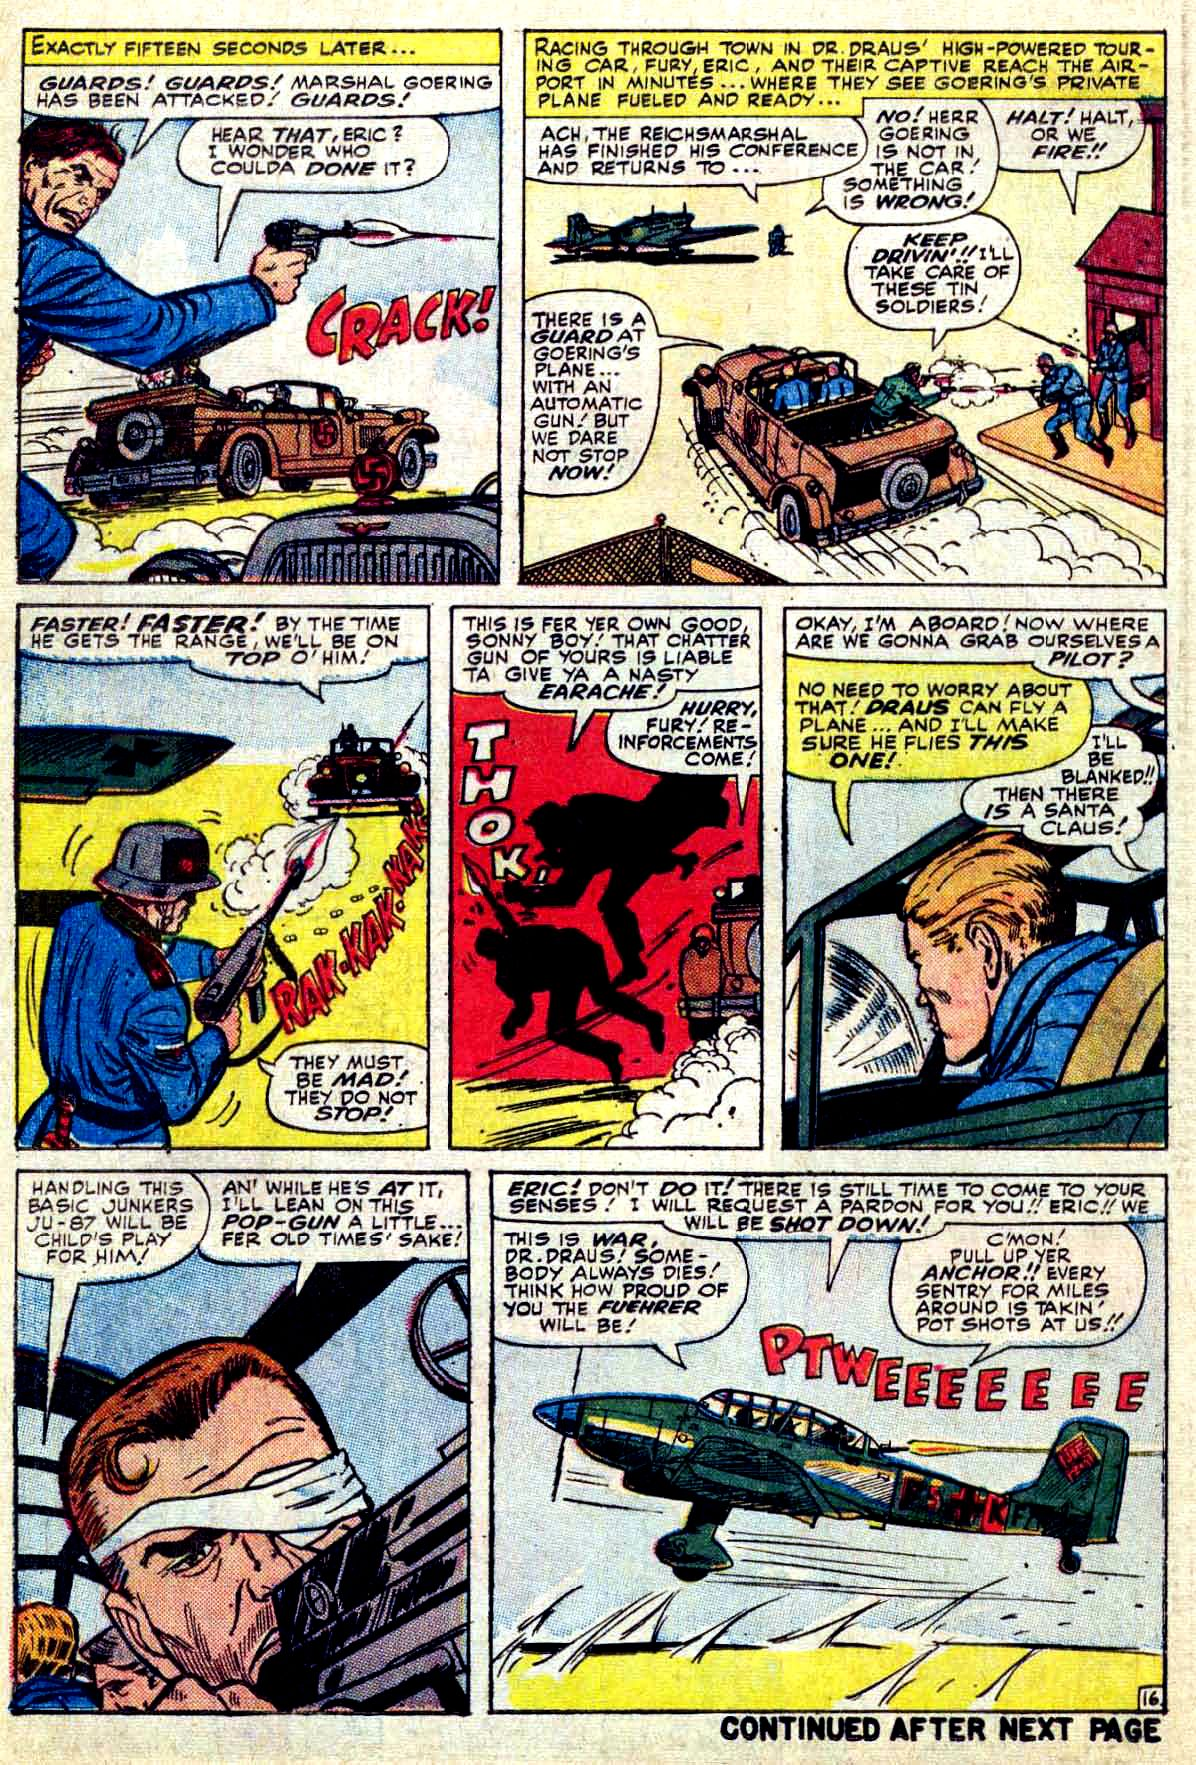 Read online Sgt. Fury comic -  Issue #27 - 22